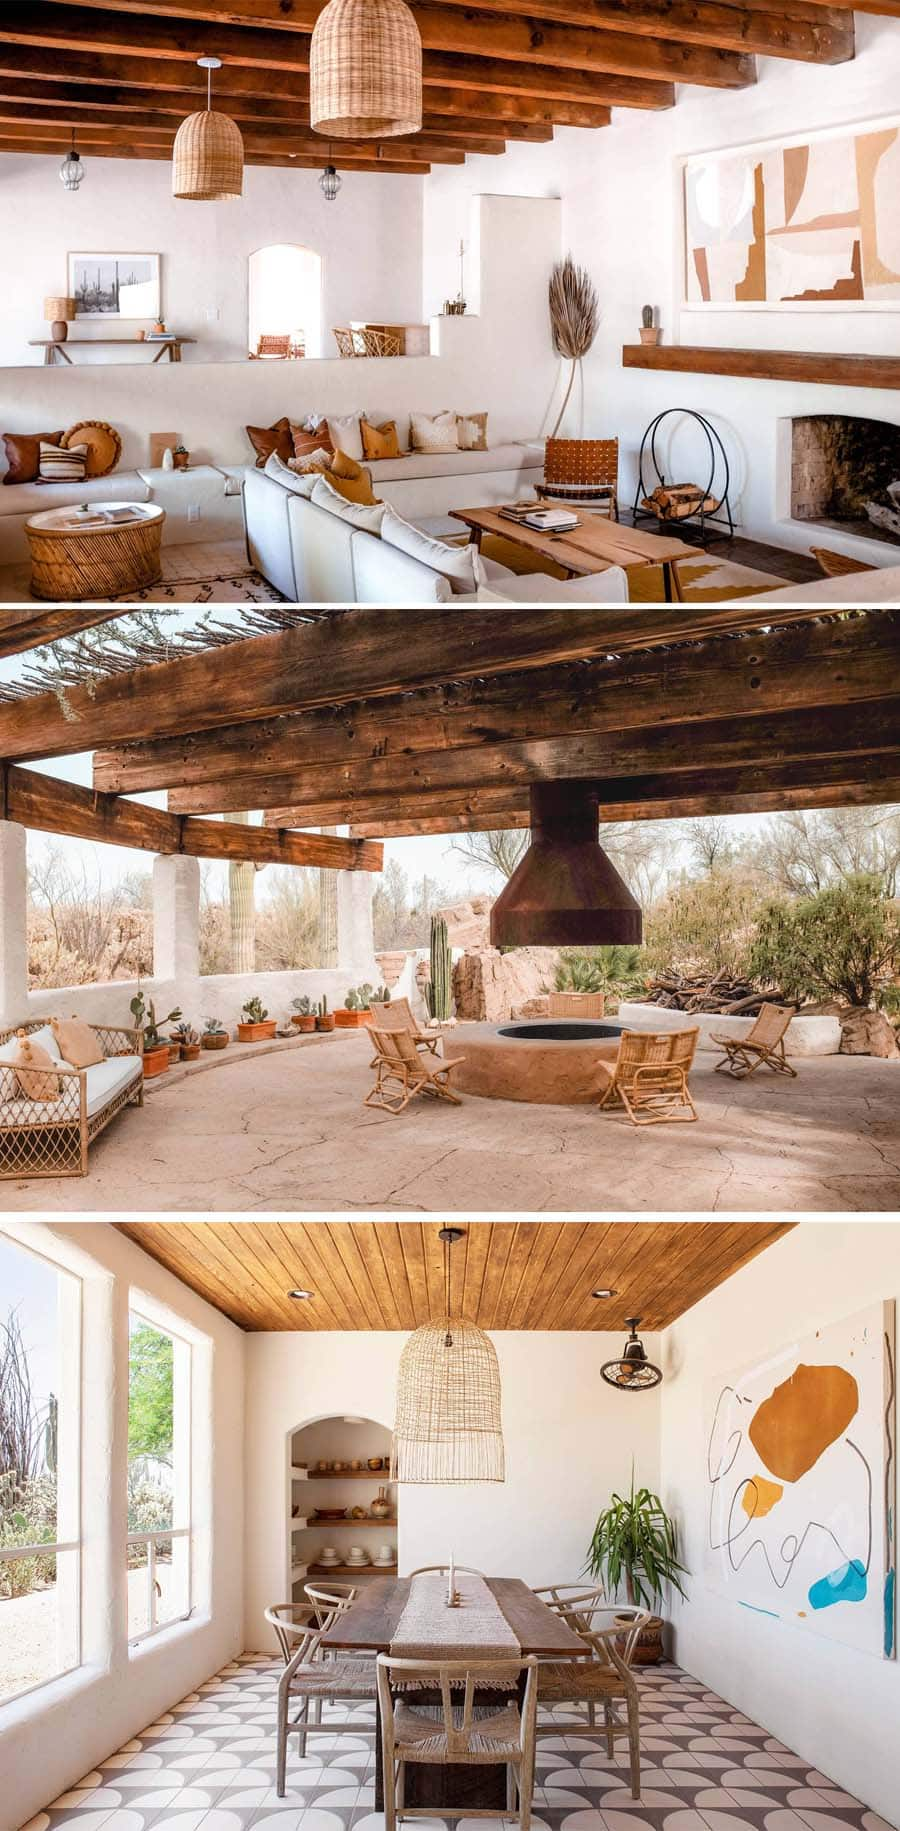 Desert bohemian Airbnb in Tucson near Saguaro National Park